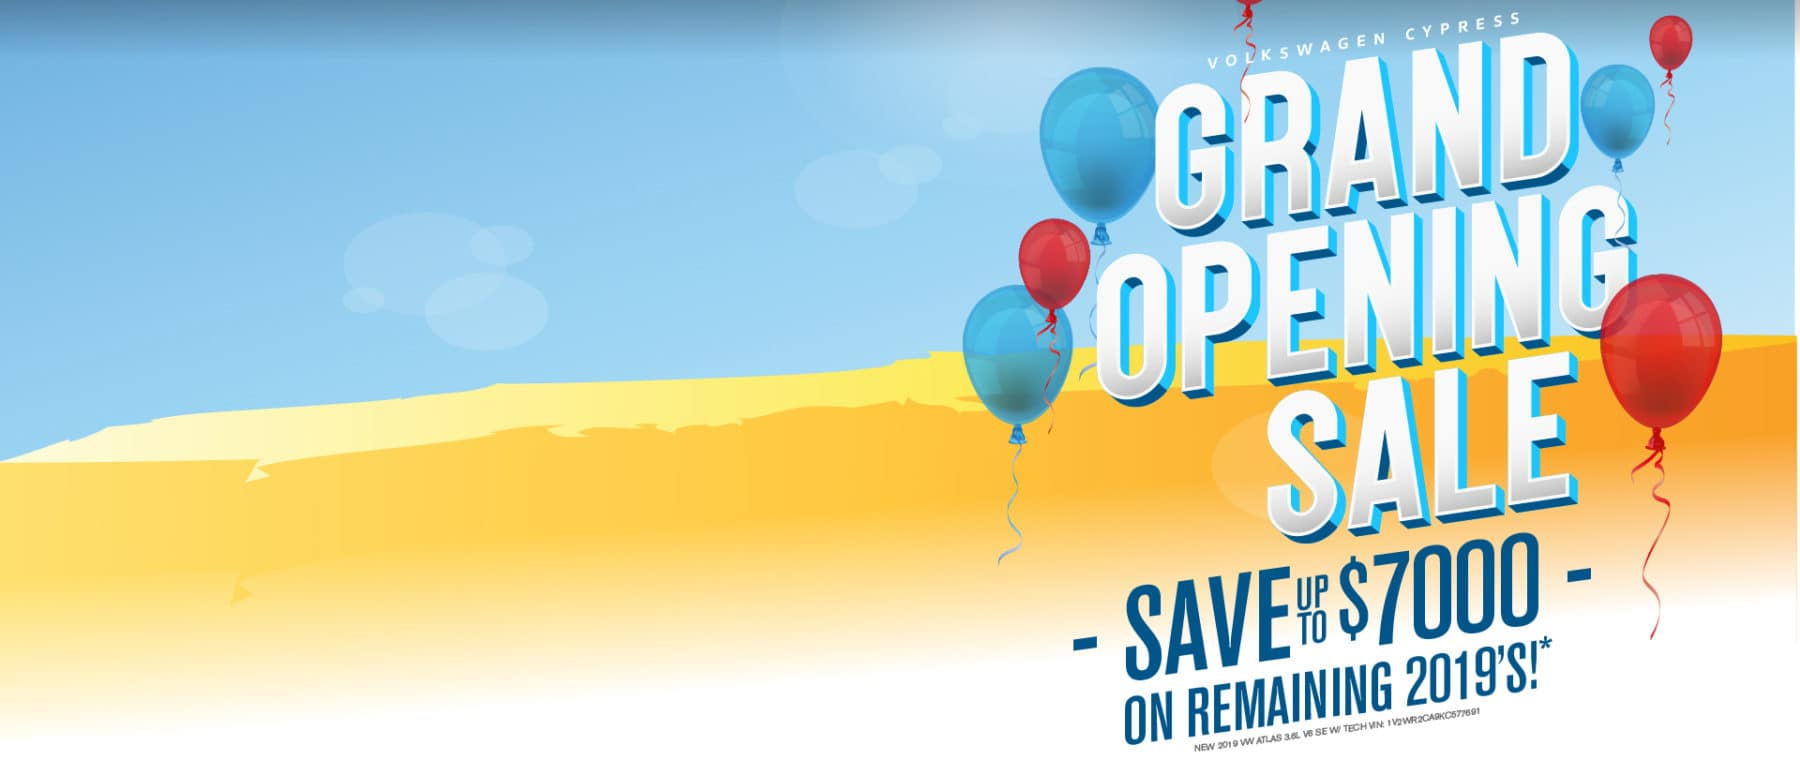 Save up to $7000 at VW Cypress during our Grand Opening Sale!